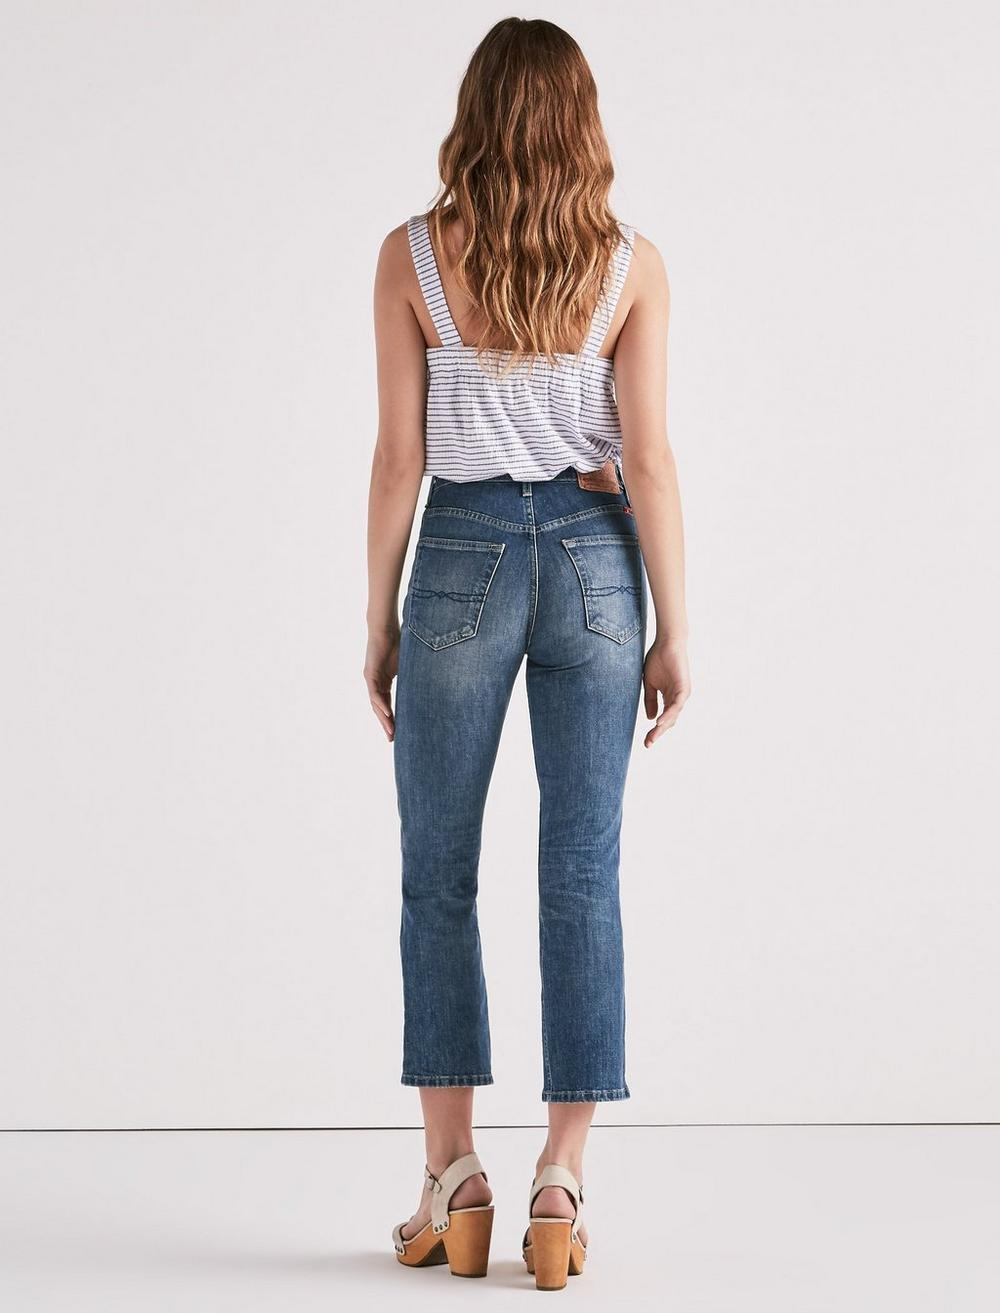 LUCKY PINS HIGH RISE CROPPED JEAN, image 3